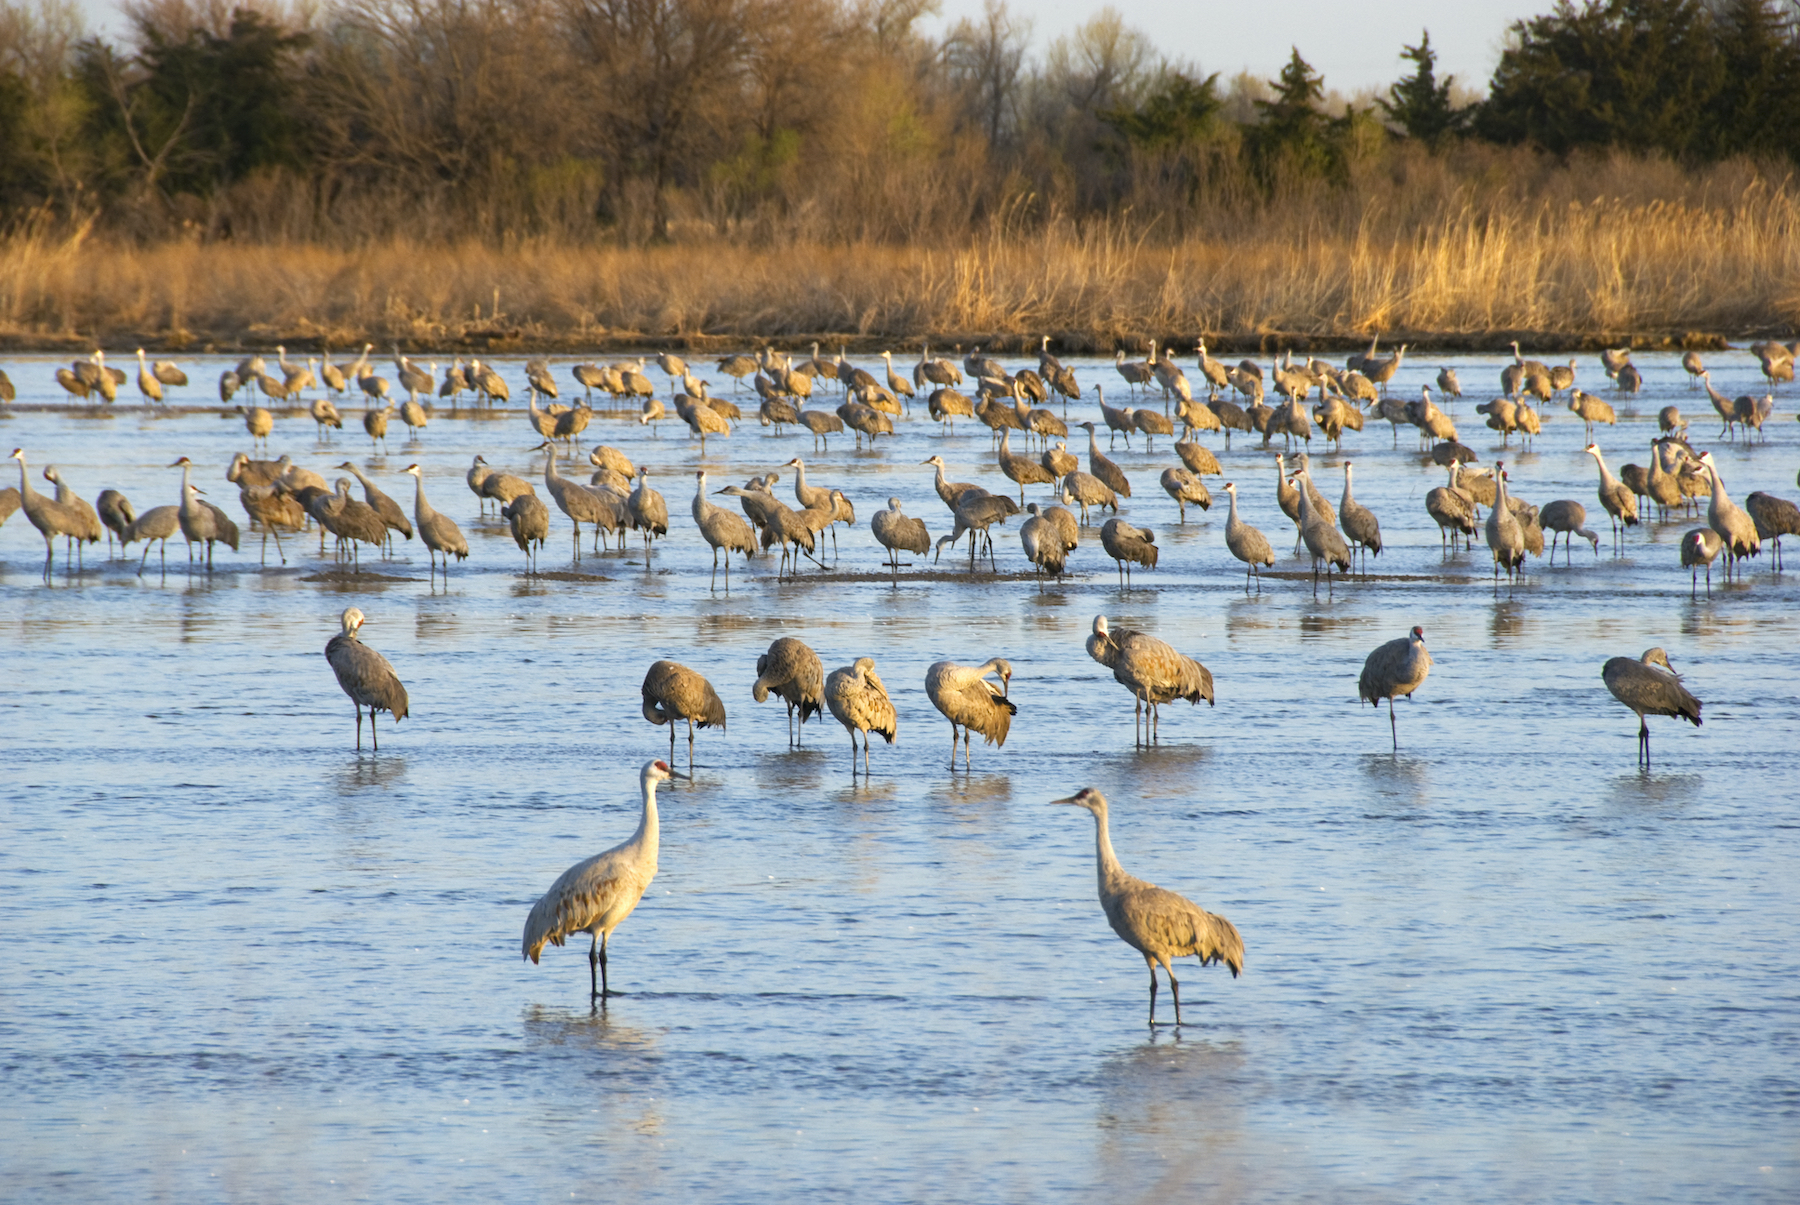 Sandhill cranes in the Platte River waking up and grooming on a sunny spring morning